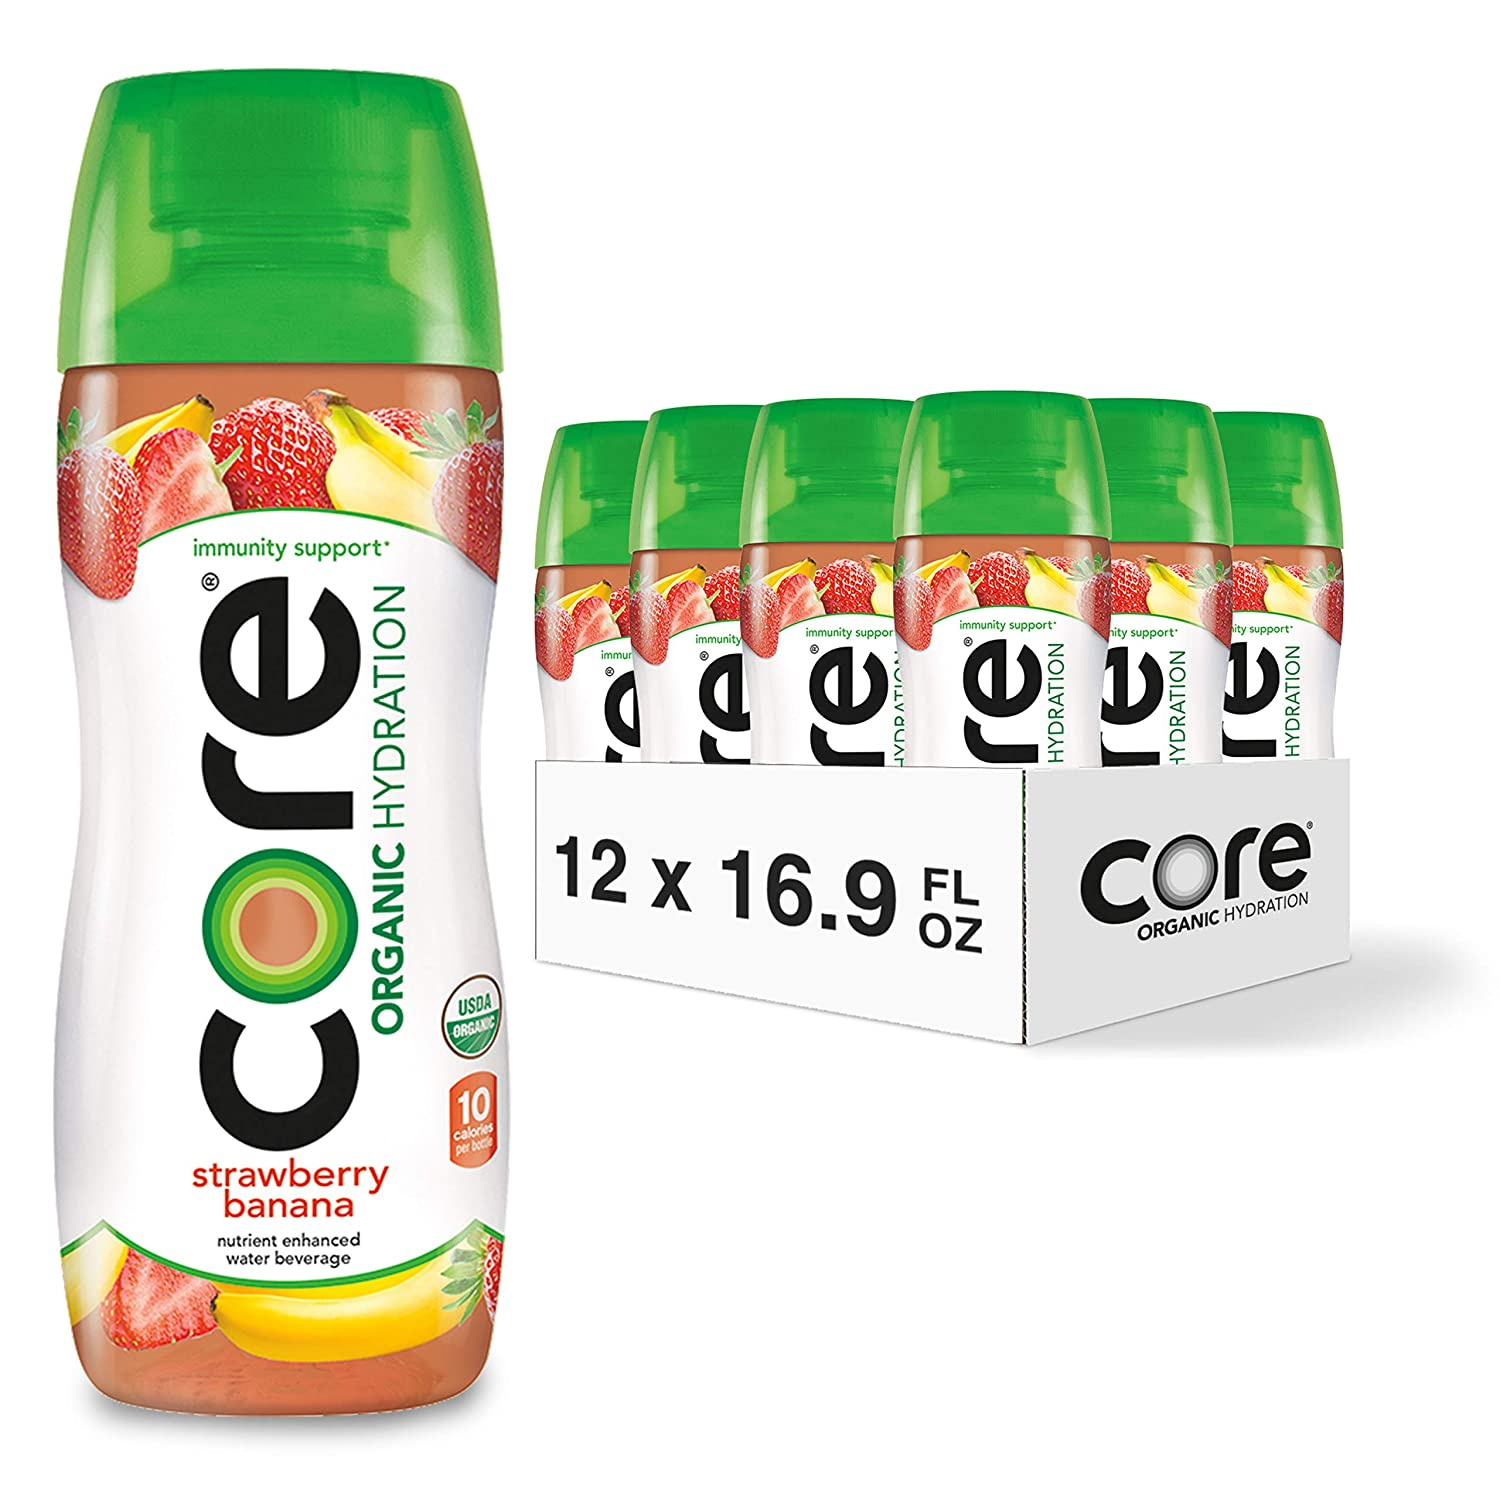 Core Organic Hydration, Strawberry Banana, 16.9 Fl Oz (Pack of 12), Nutrient Enhanced Flavored Water with Immunity Support from Zinc, USDA Certified Organic